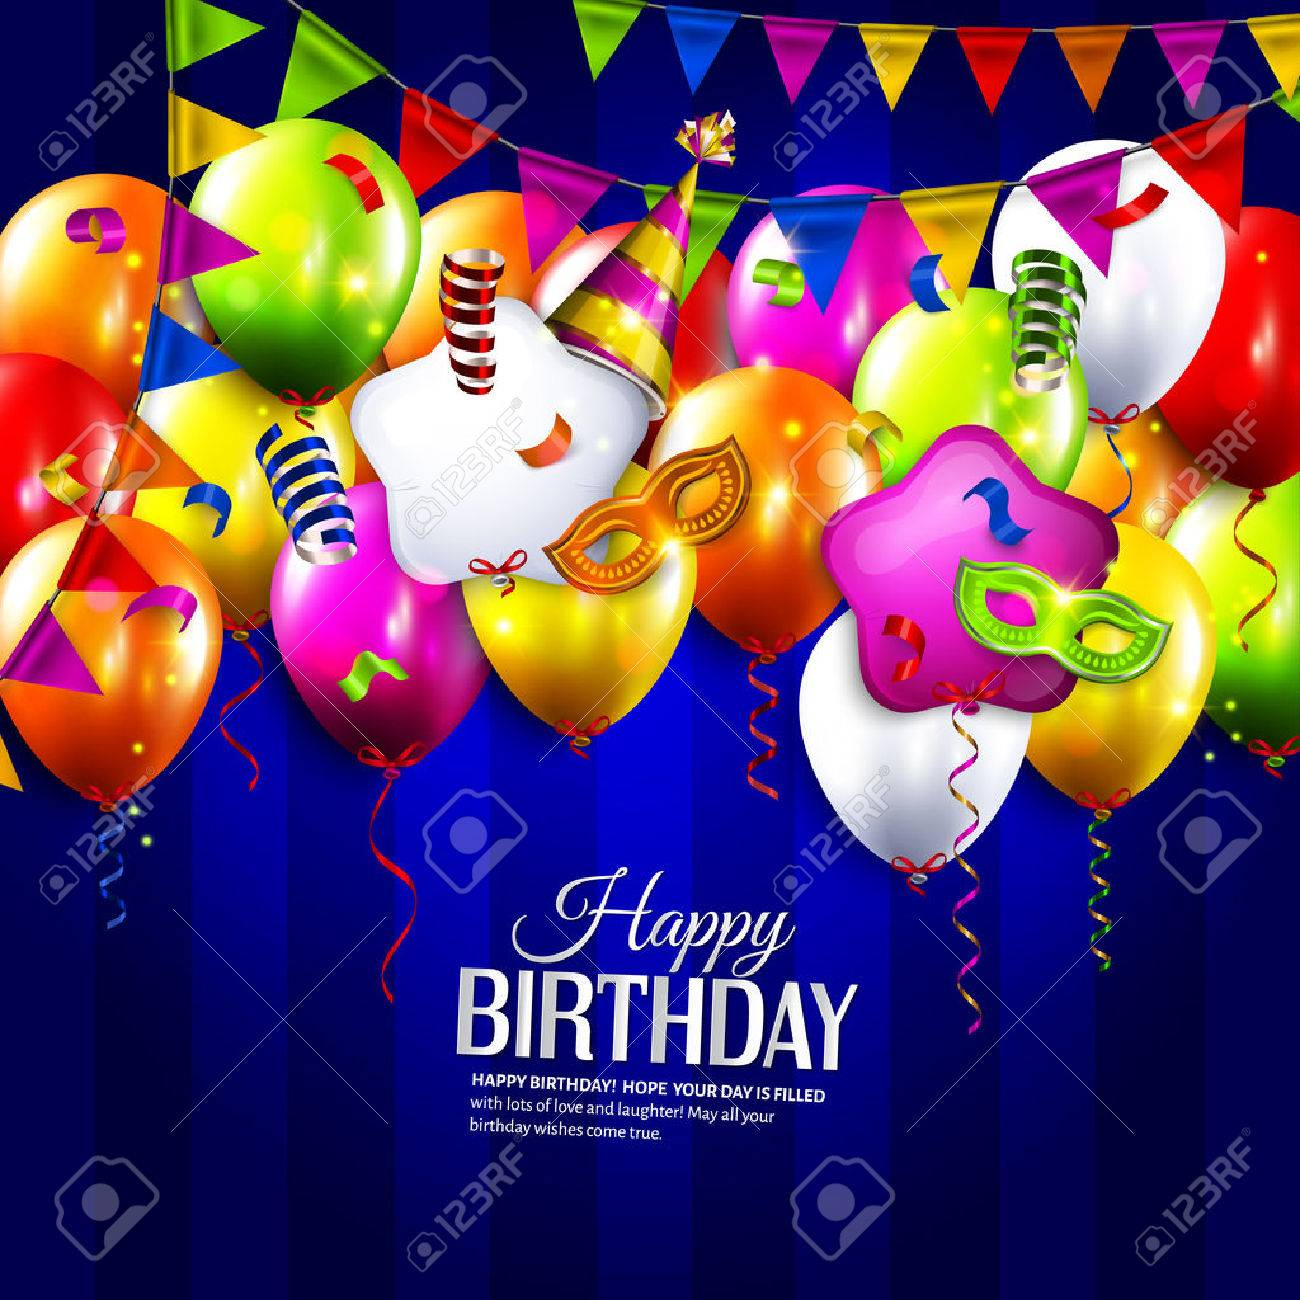 Vector birthday card with colorful balloons, bunting flags, curling ribbons, carnival mask, hat and confetti on stripes background. - 41659079